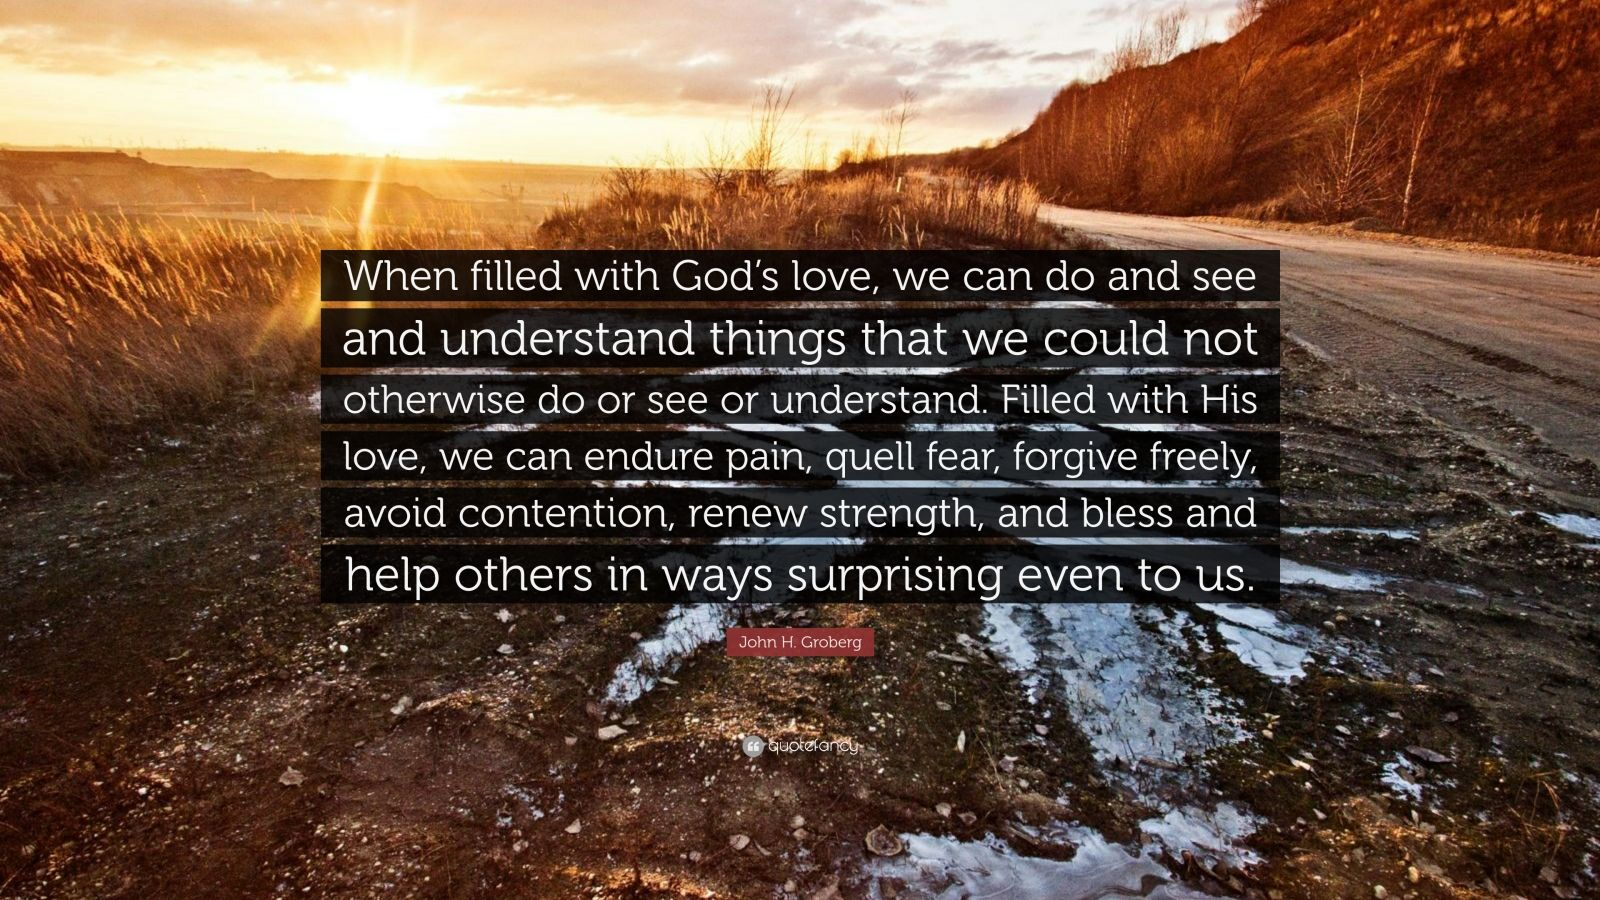 "John H. Groberg Quote: ""When filled with God's love, we can do and see and understand things that we could not otherwise do or see or understand. Filled with His love, we can endure pain, quell fear, forgive freely, avoid contention, renew strength, and bless and help others in ways surprising even to us."""